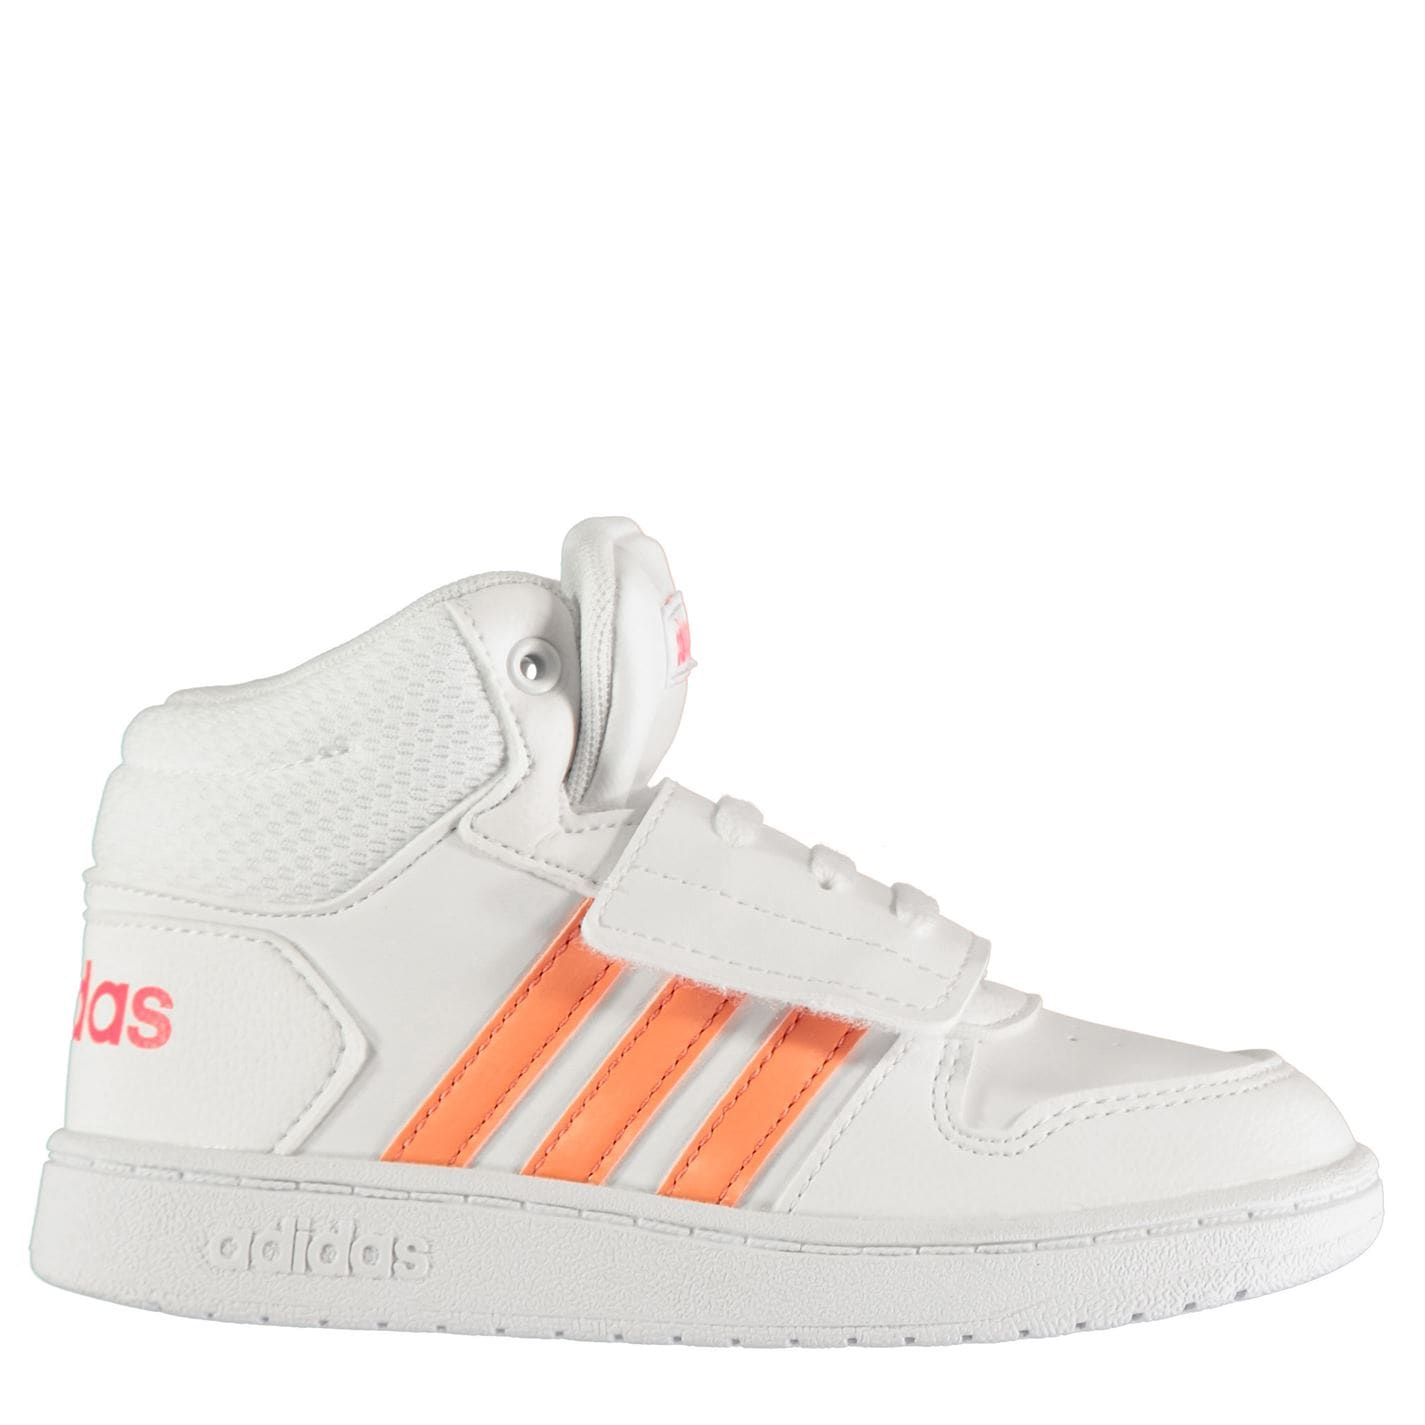 adidas Hoops Mid Infant Trainers White/Coral